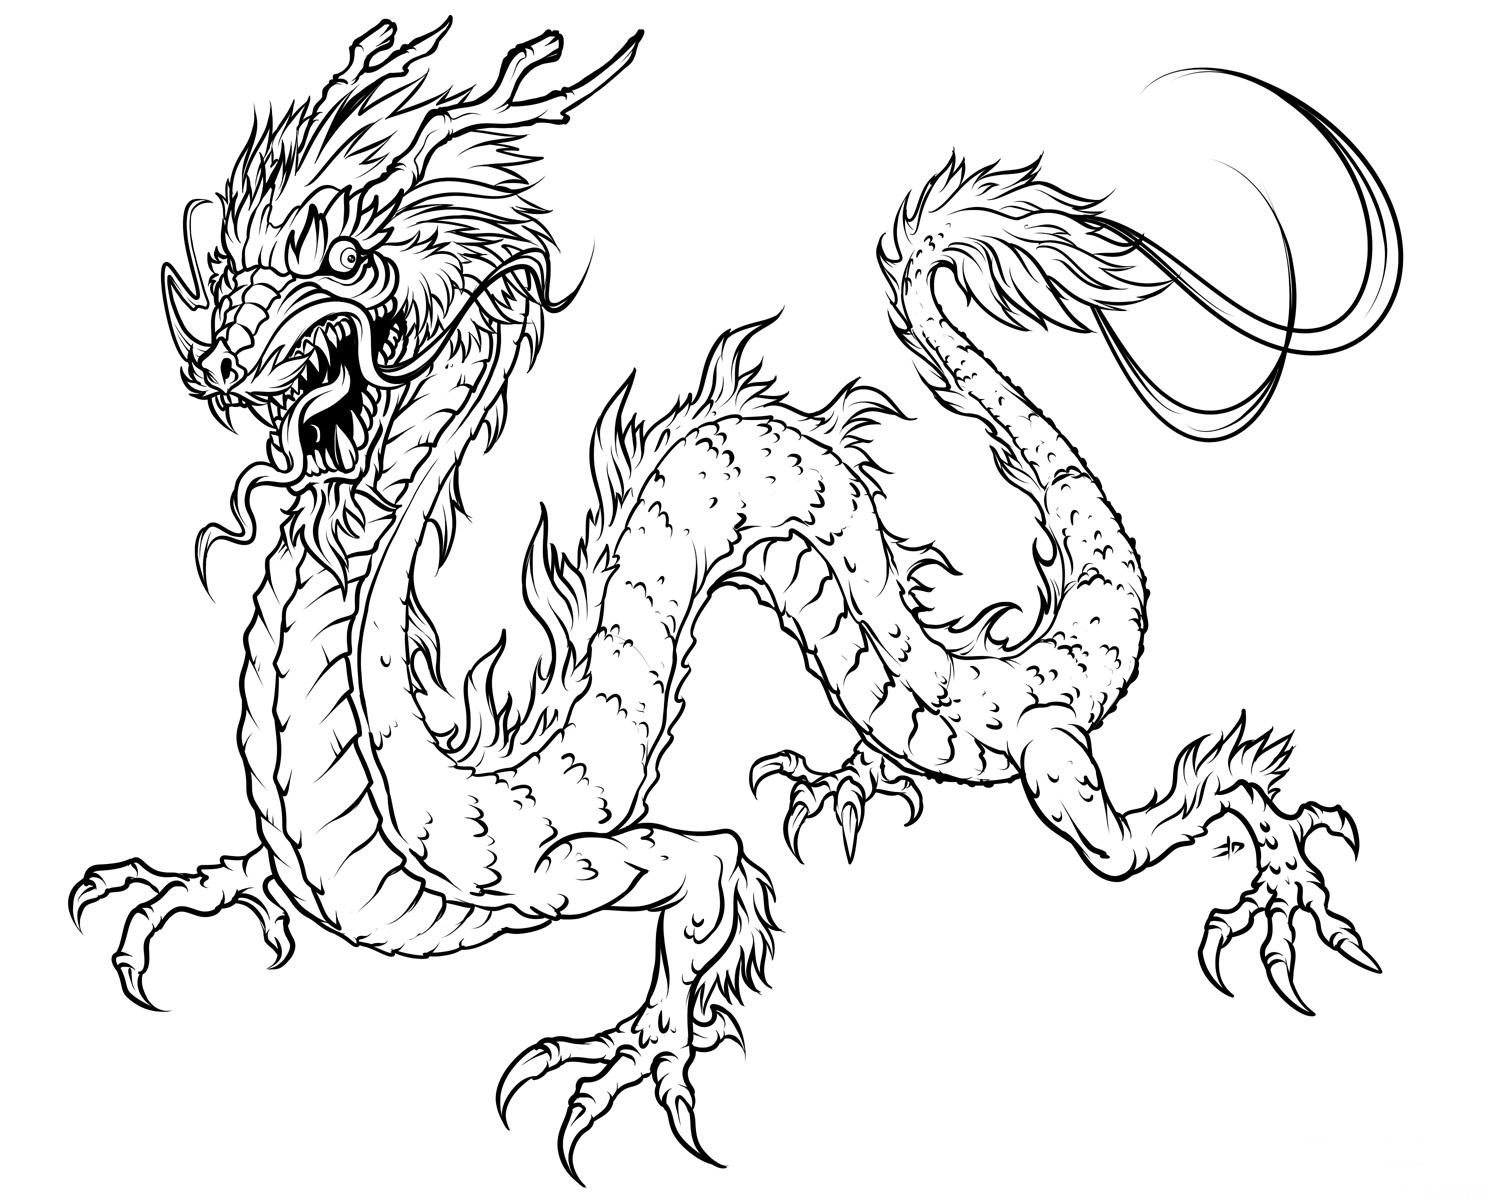 Printable Dragon Coloring Pages moreover Dragons Coloring Pages as well  further dragon coloring pages printable 01 additionally dragon coloring pages 0 further 9002b1bdcf64fac4808e13a73c9d28d4 additionally old Dragon Coloring Pages as well  likewise  in addition dragon coloring pages 8 as well Free Dragon Coloring Pages. on dragon coloring pages d